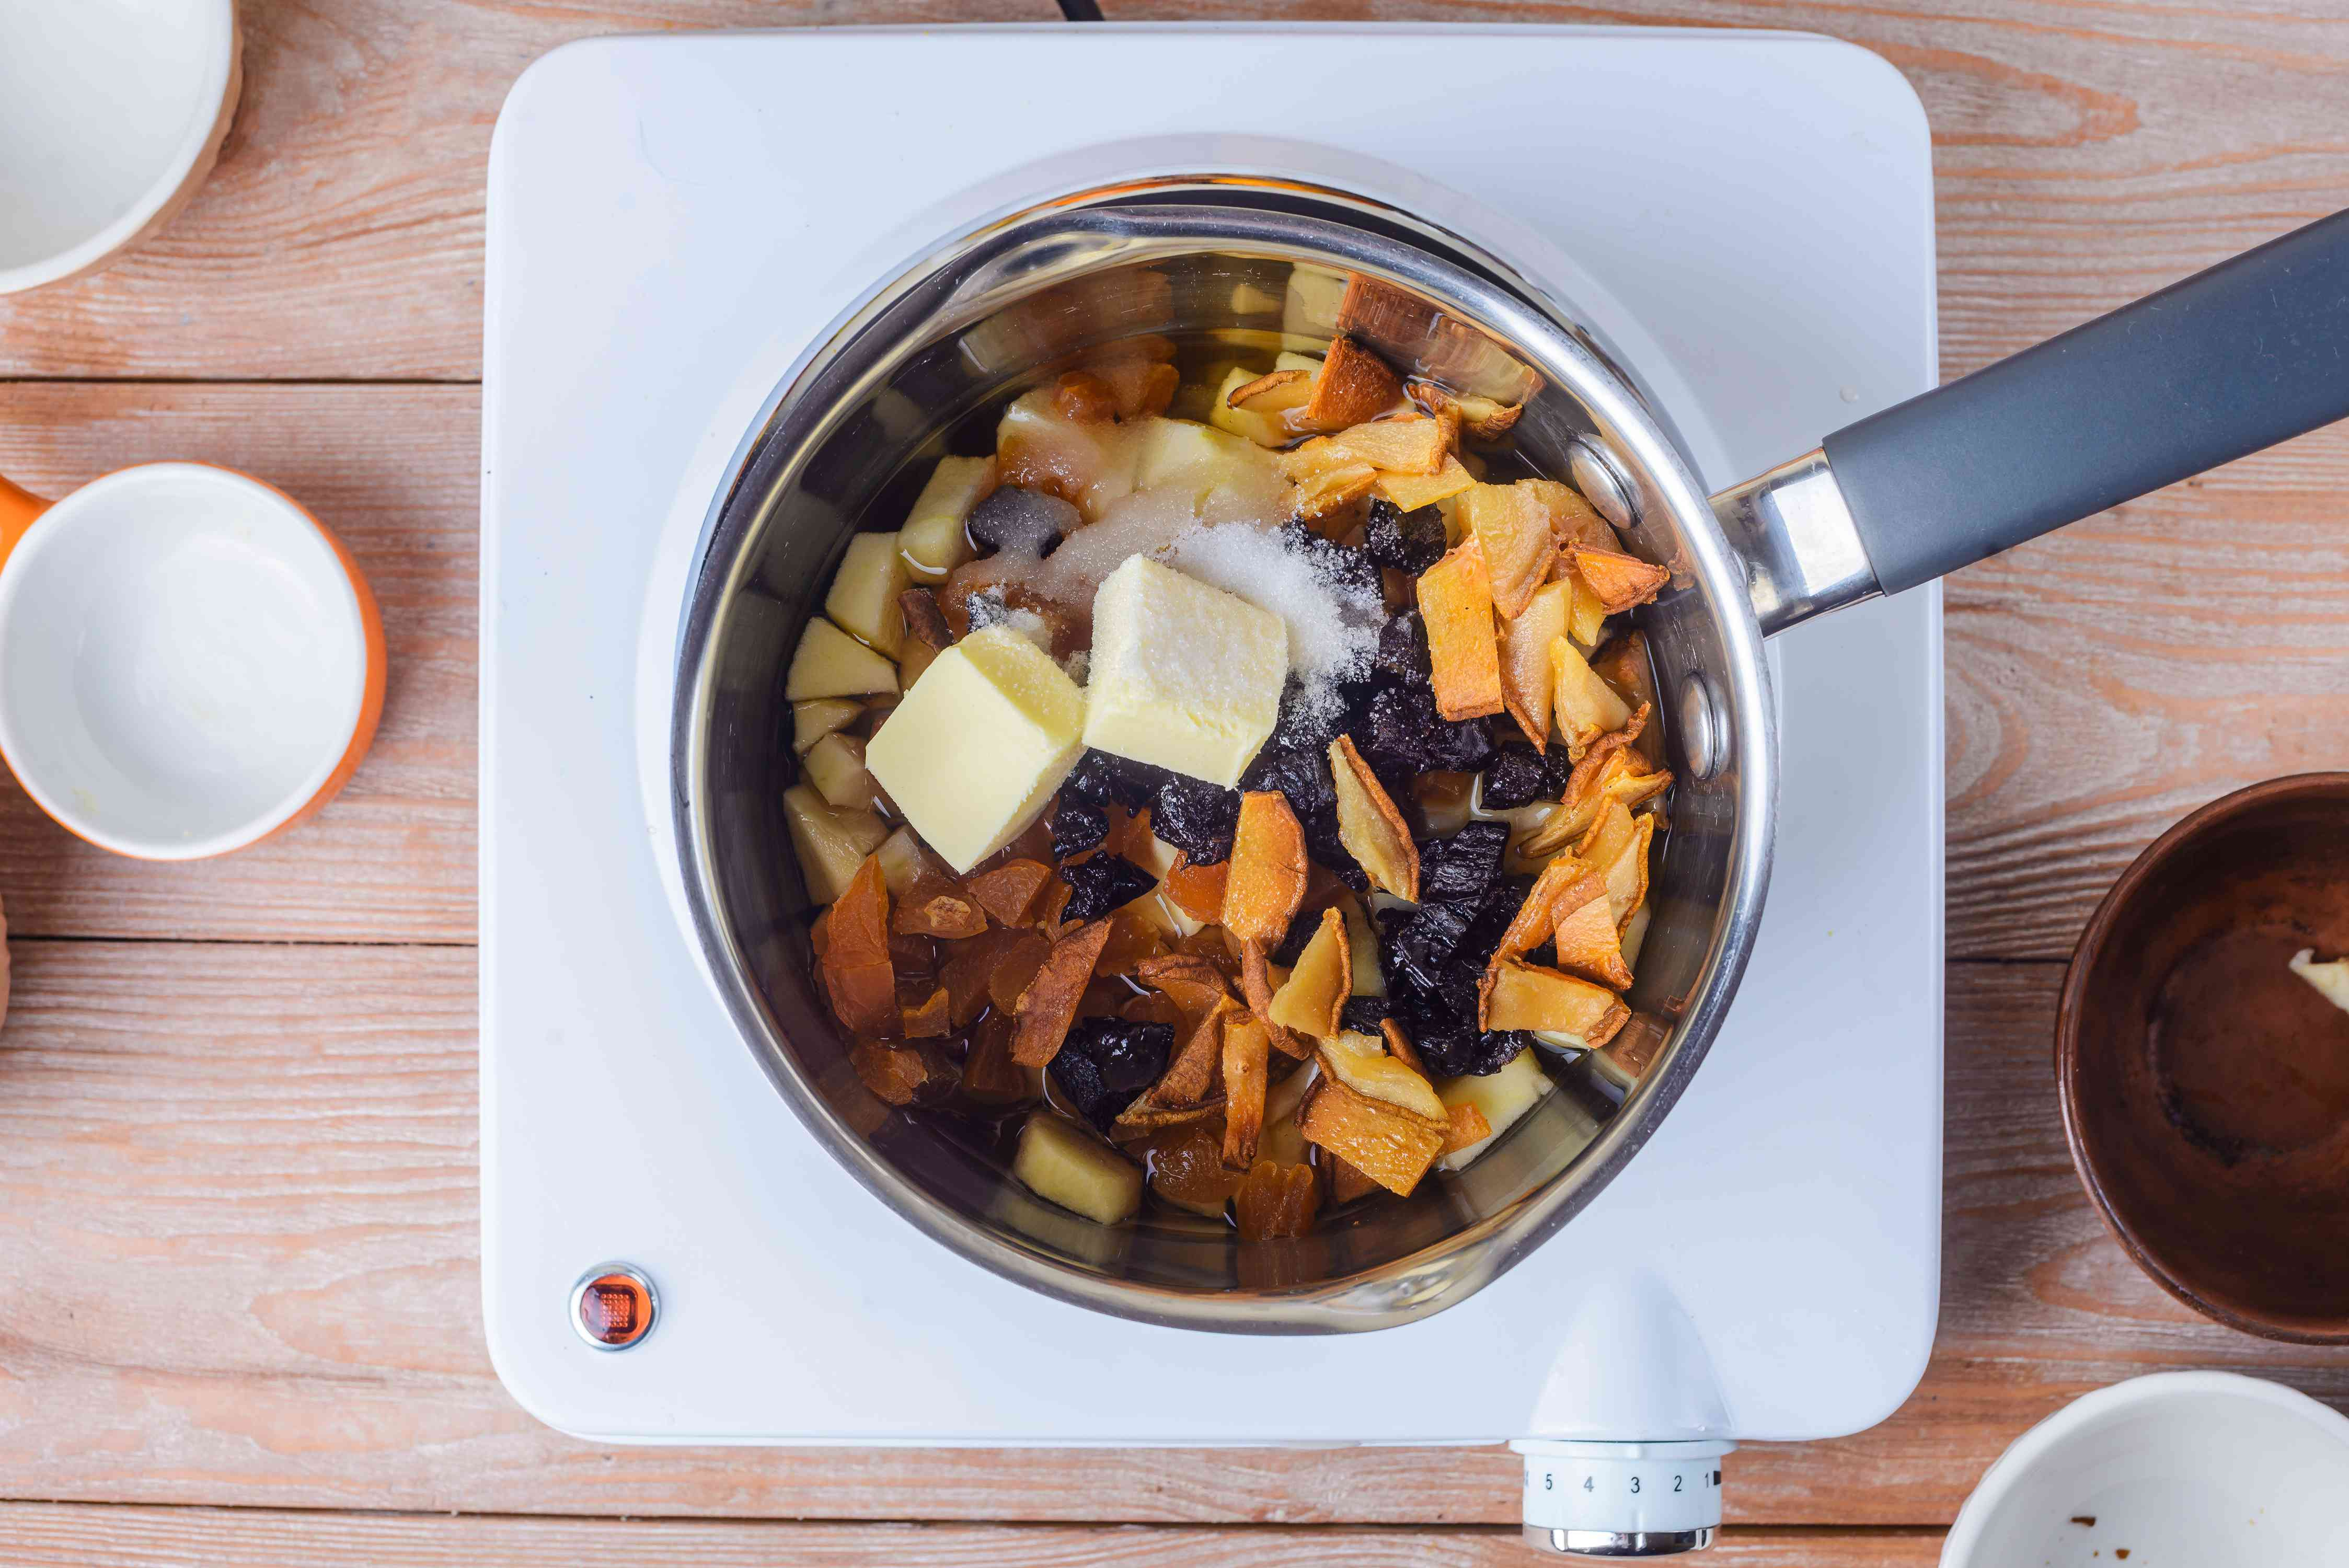 Bring butter, sugar, and pears to boil